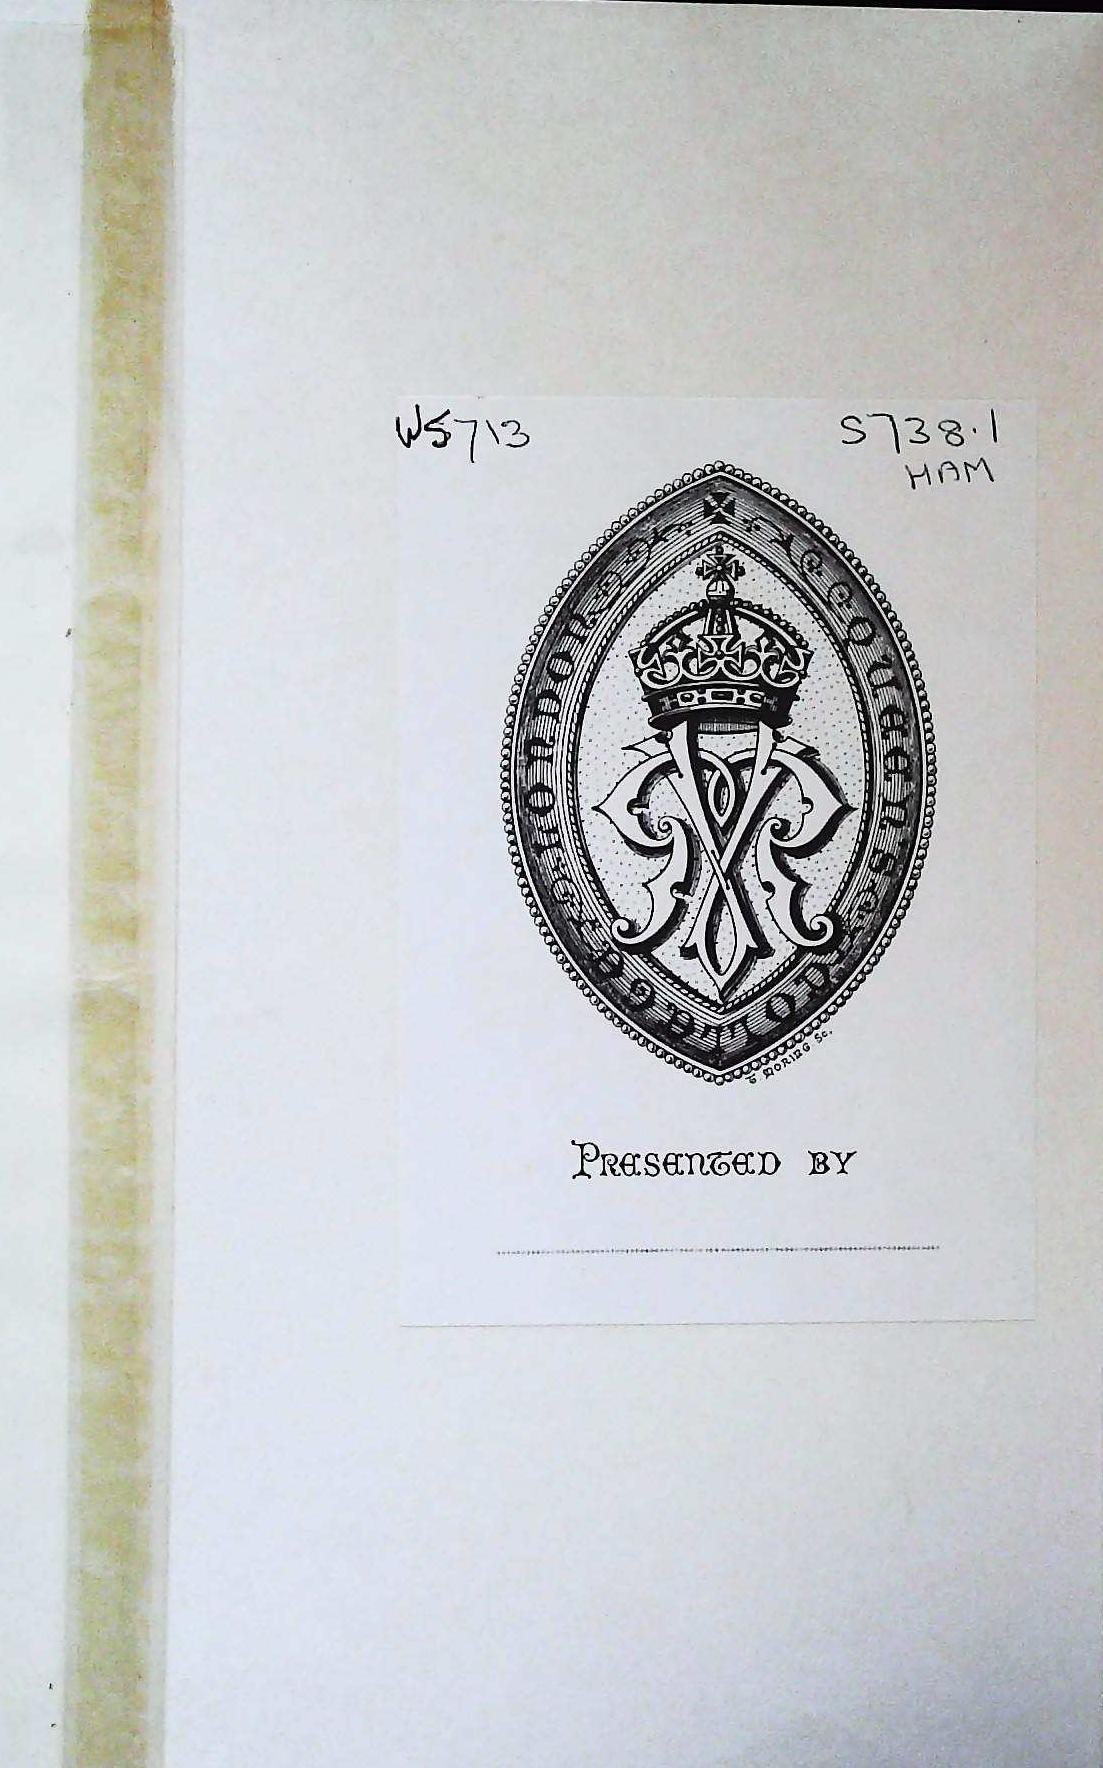 The Thames and Hudson Manual of Pottery and Ceramics by David Hamilton softback book 188 pages - Image 3 of 4